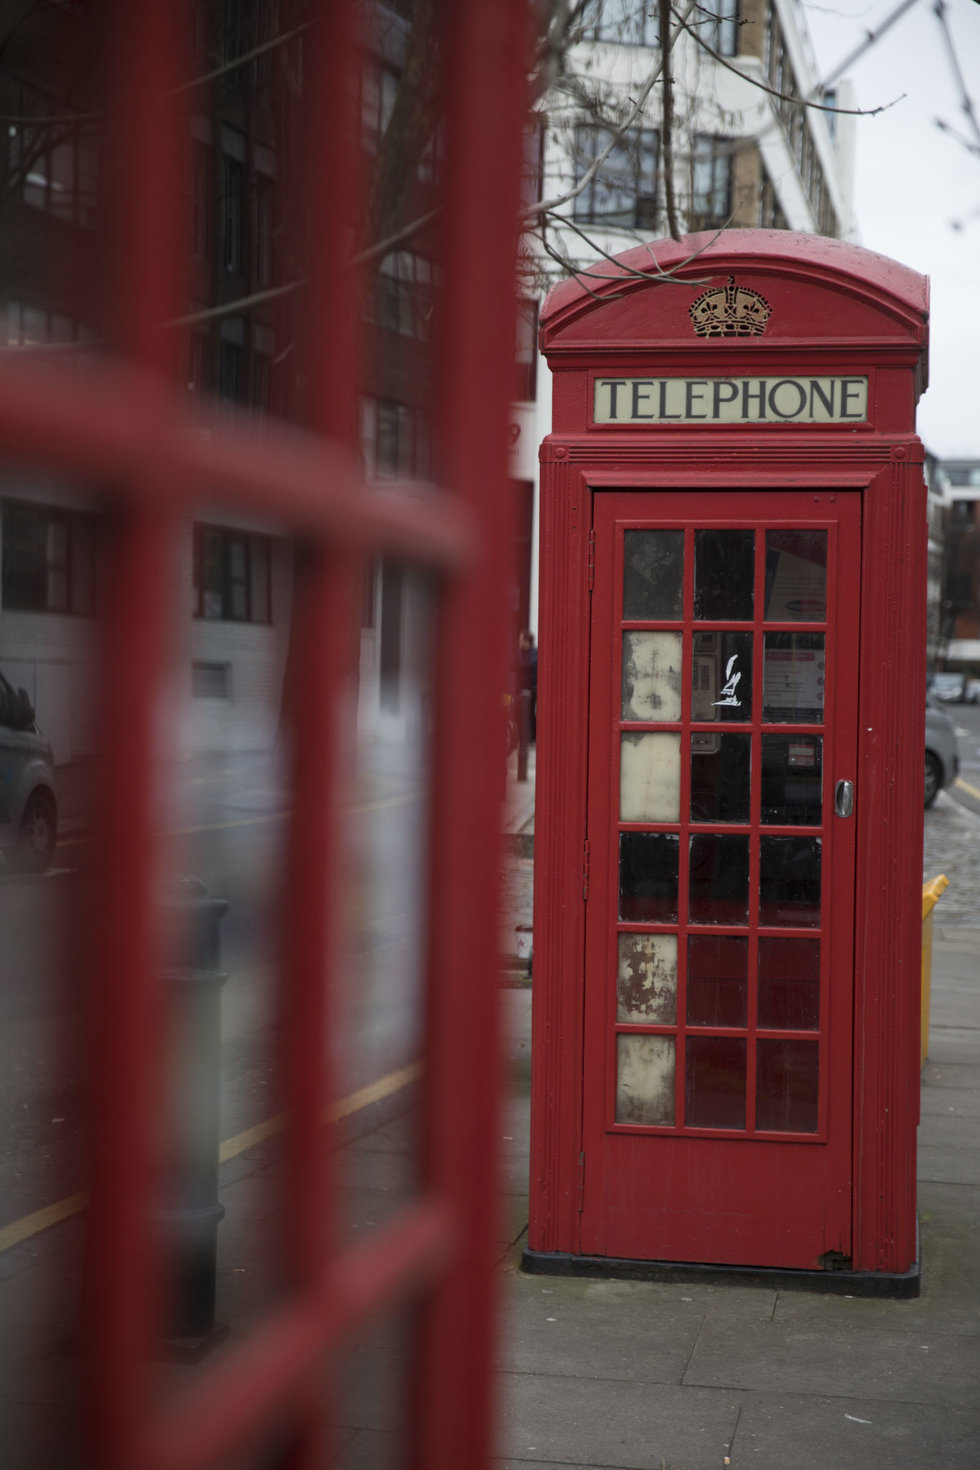 One of the city's enduring red phone booths